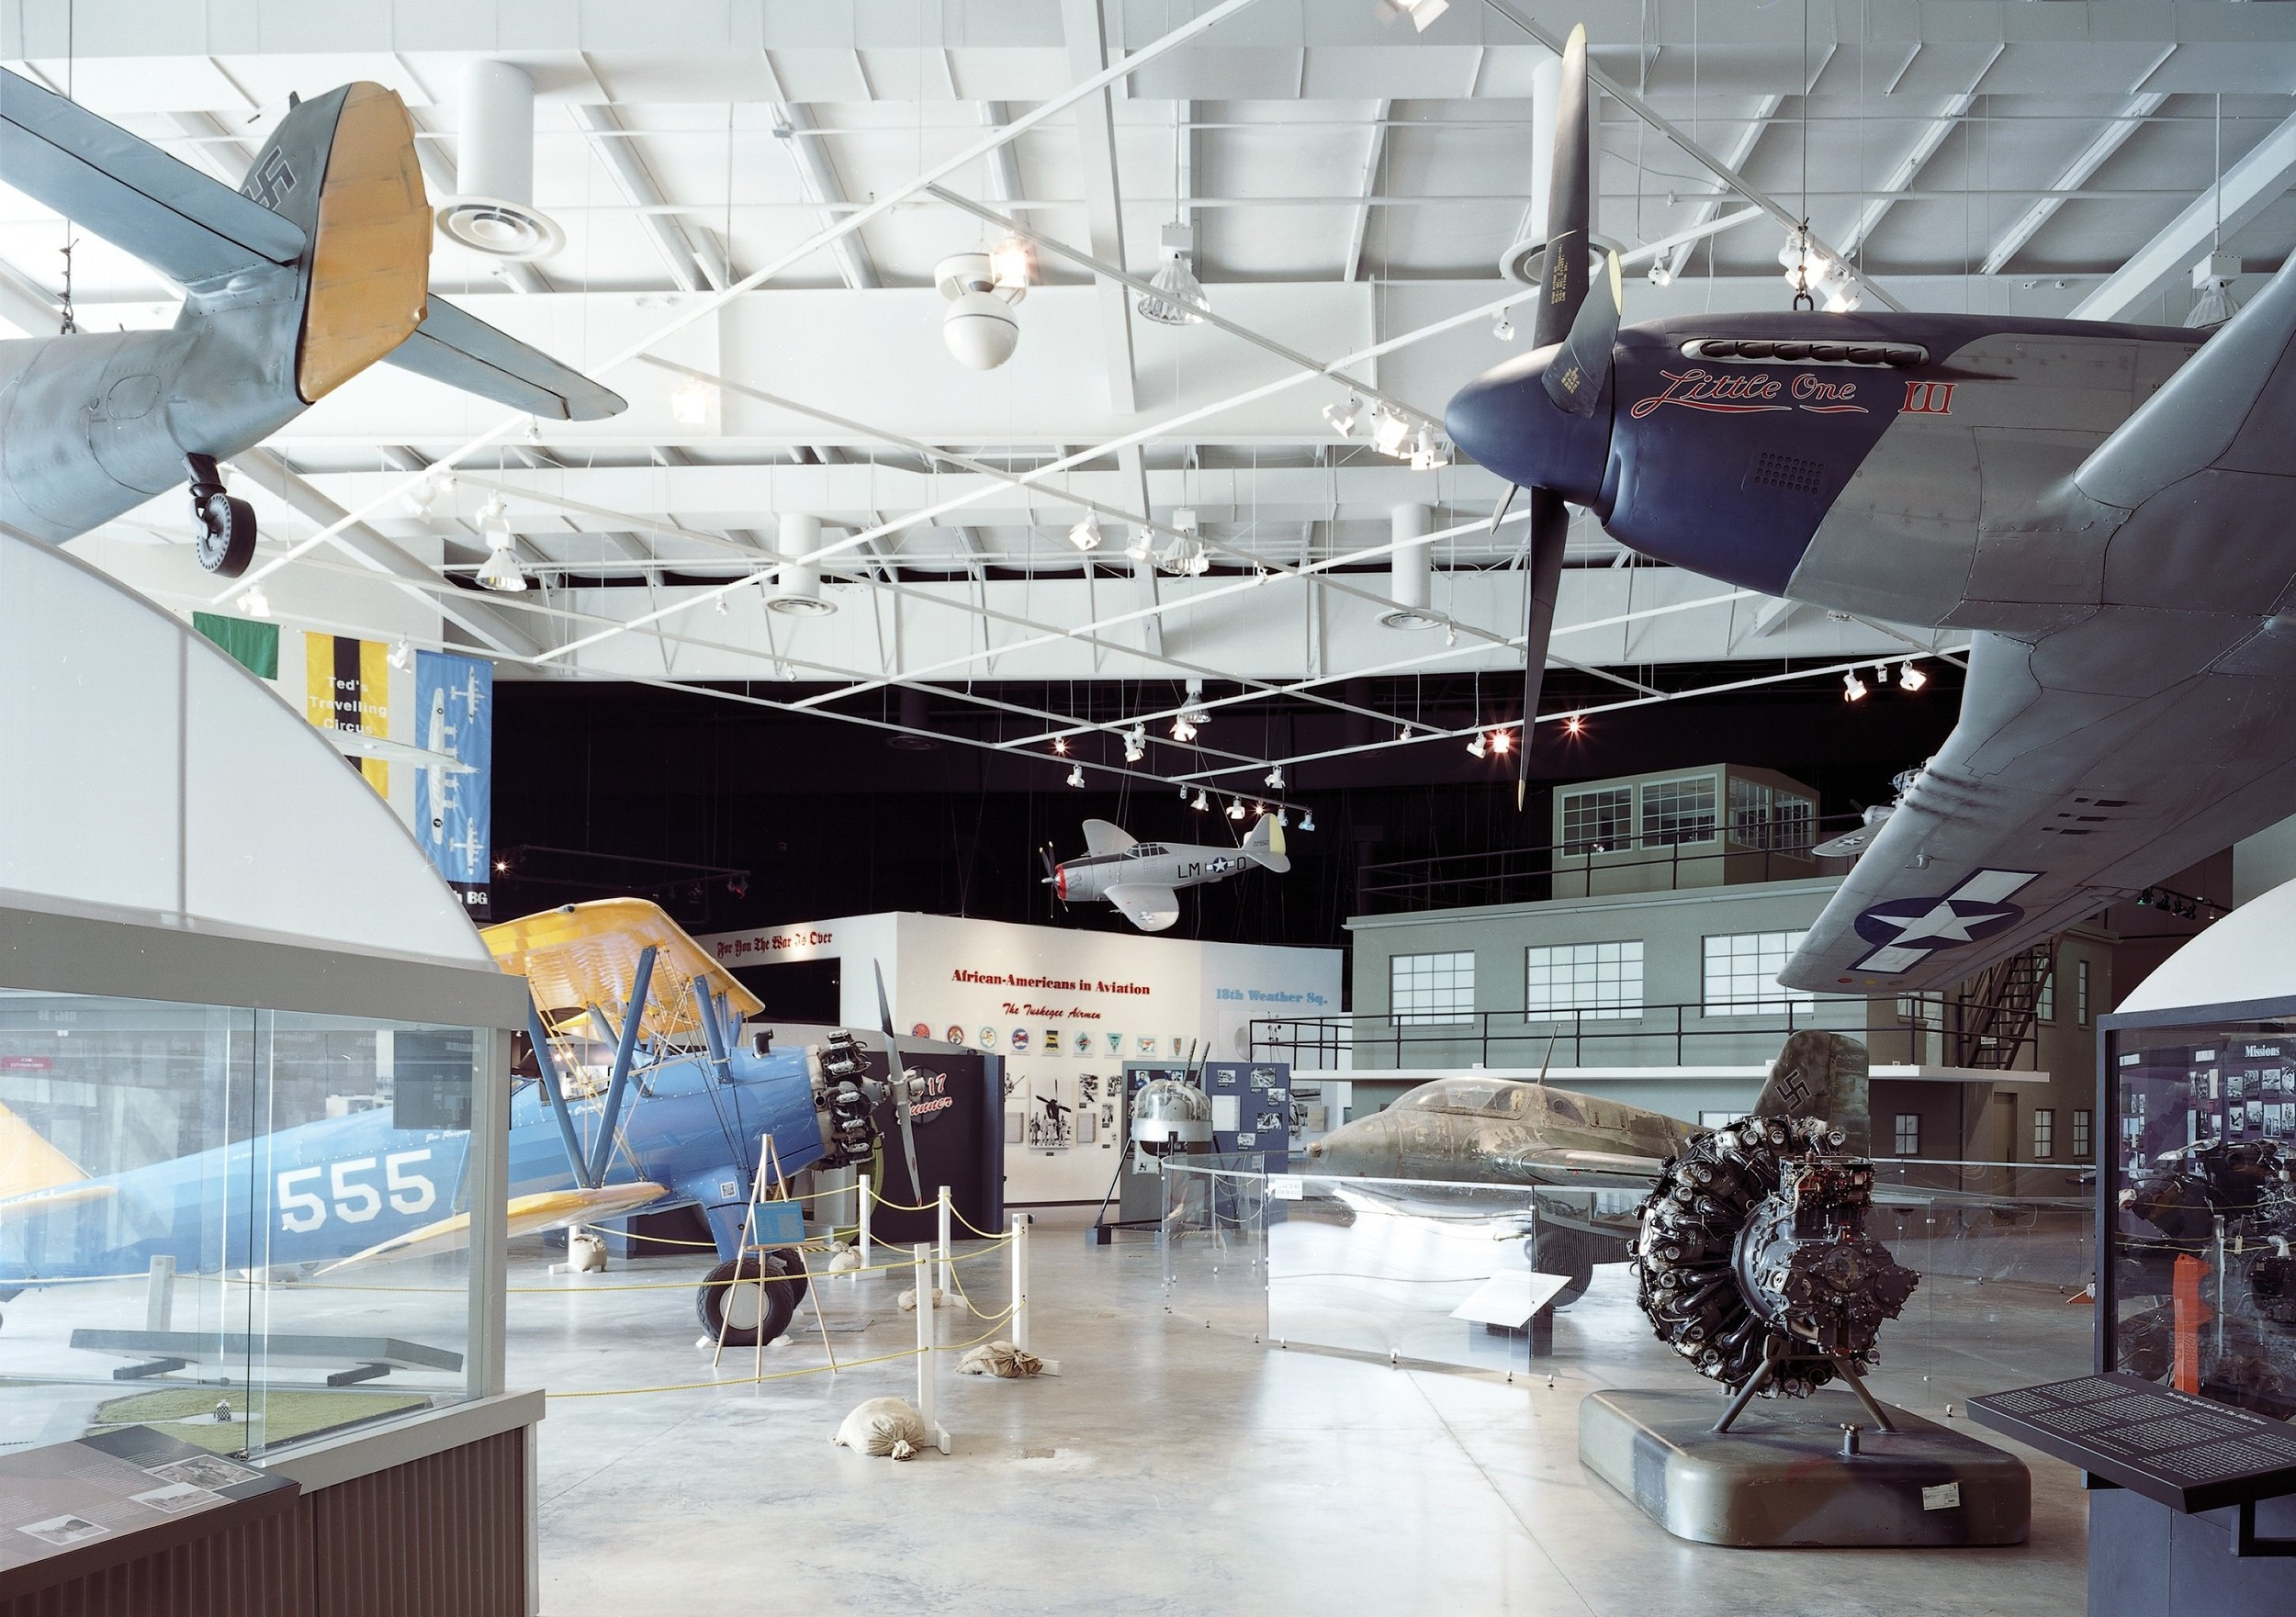 8th Air Force Museum